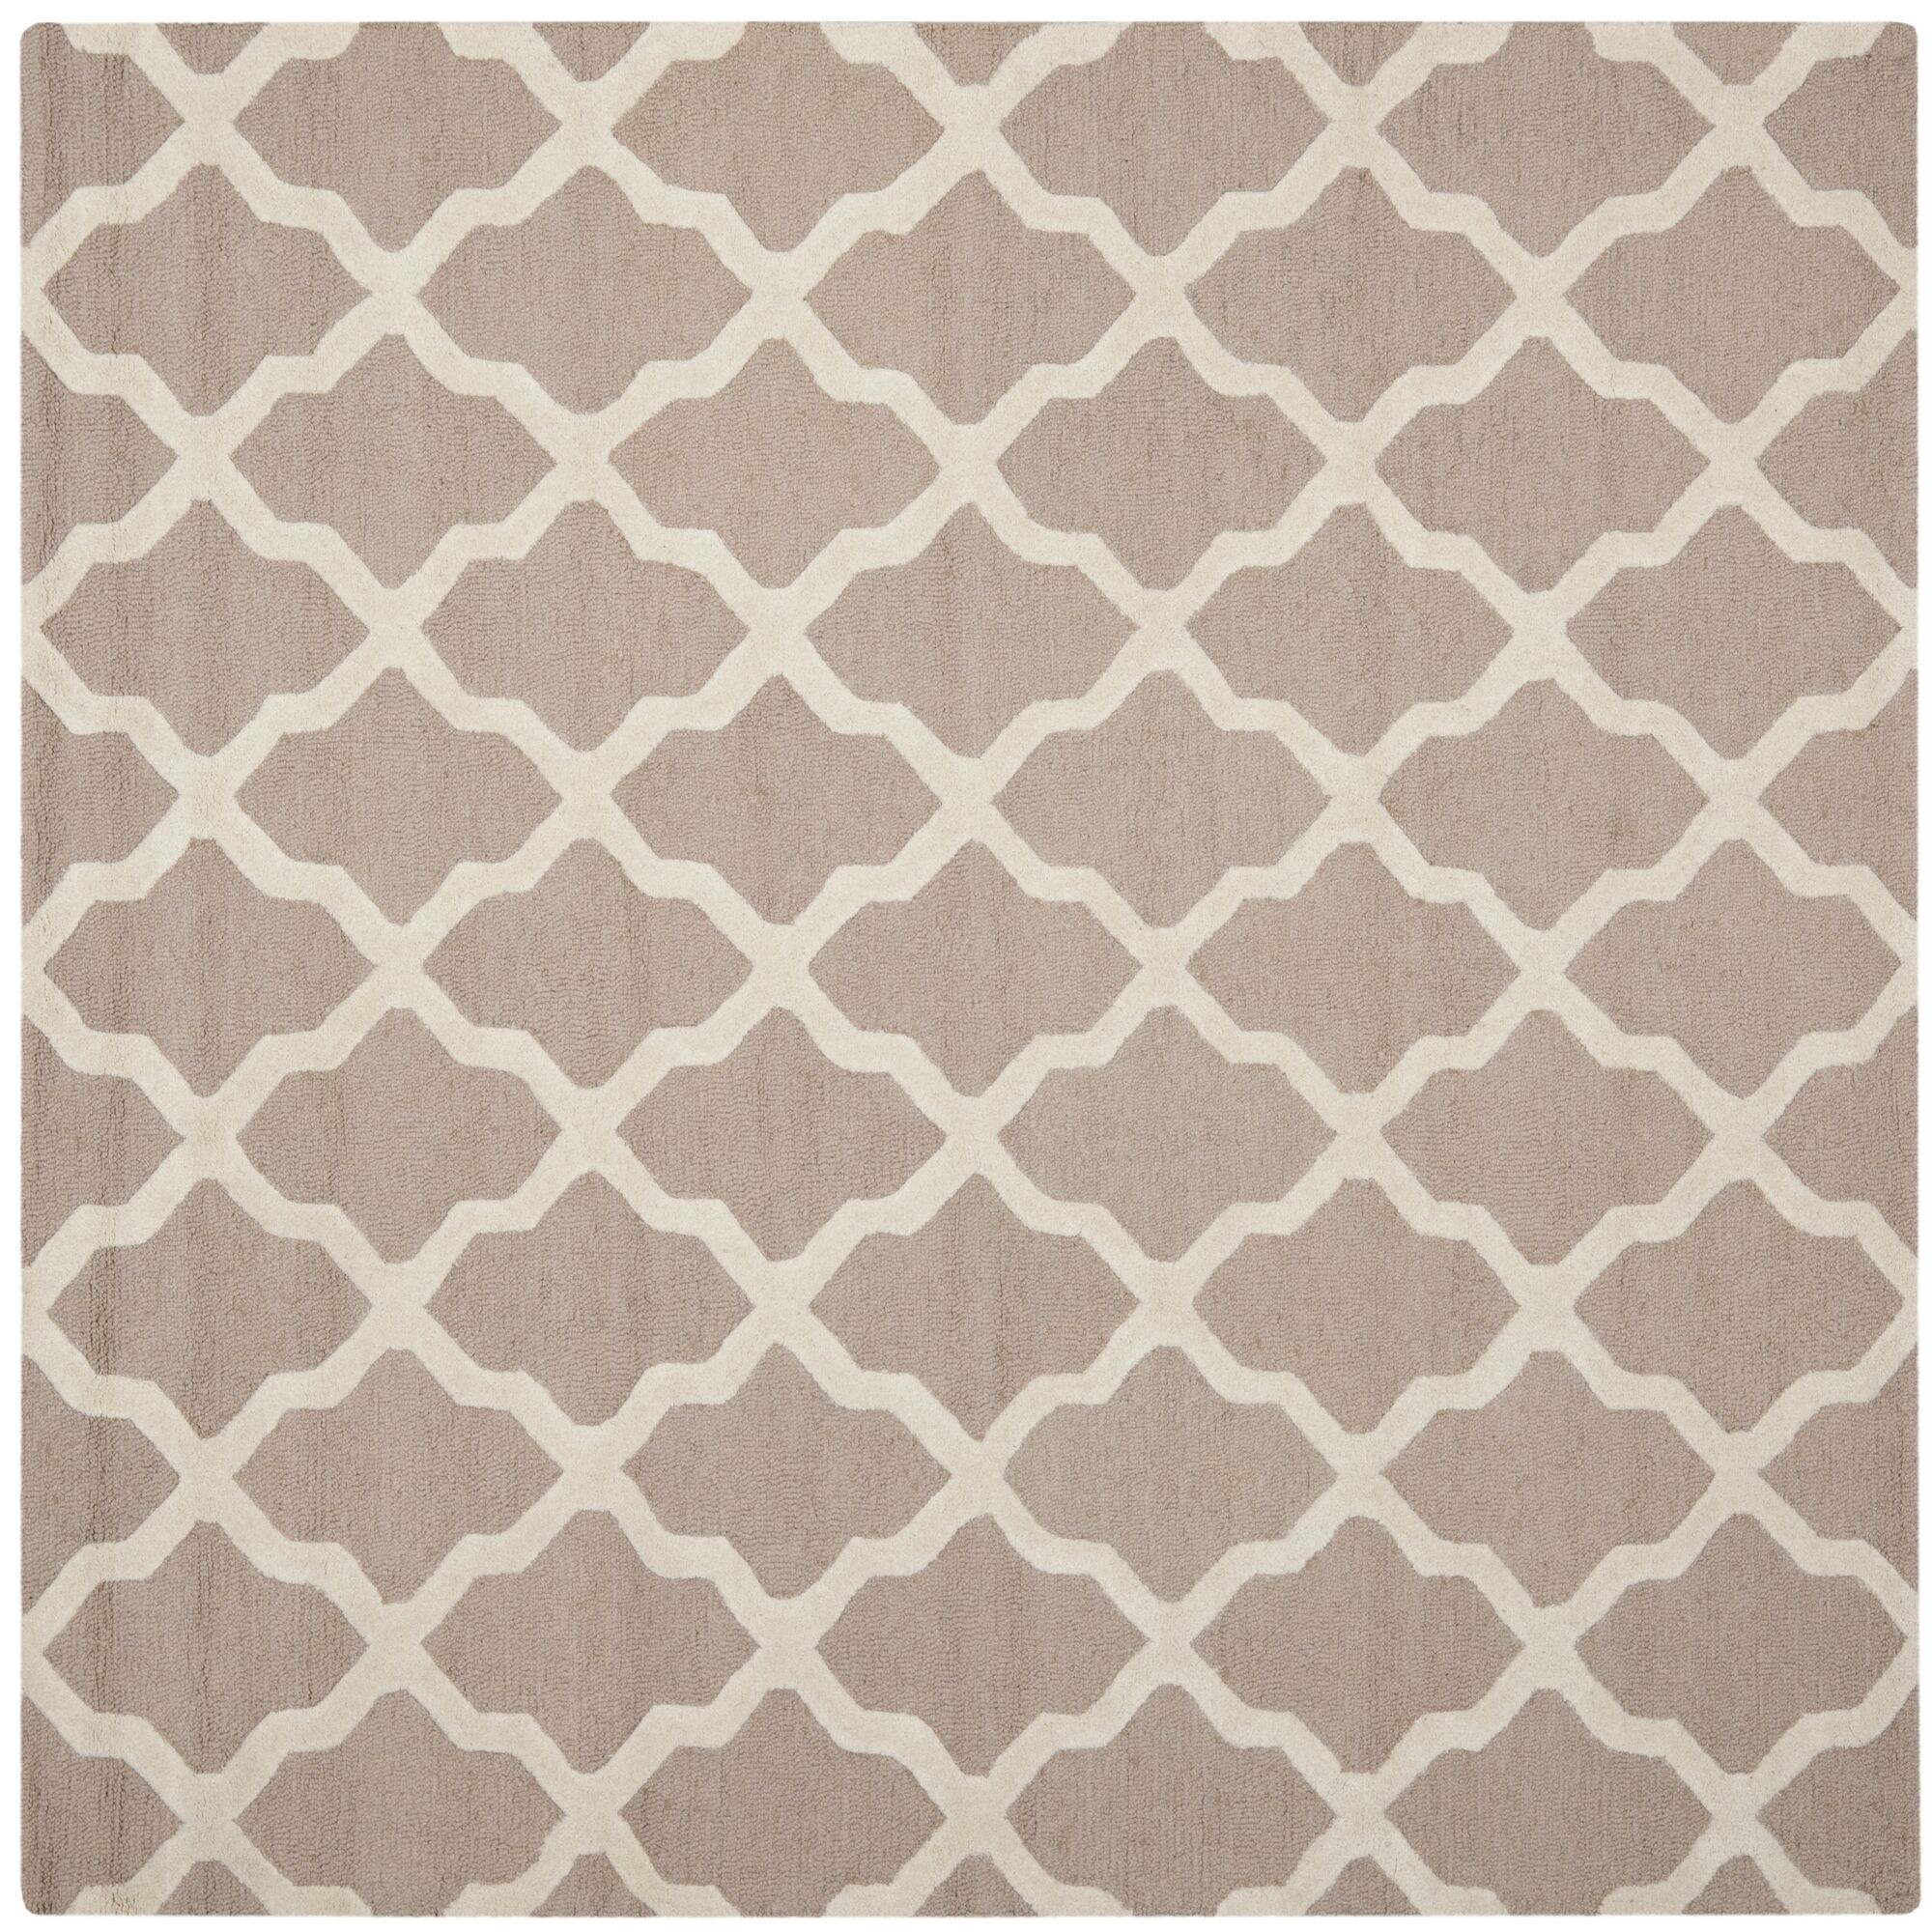 Kirschbaum Hand-Woven Wool Area Rug Rug Size: Square 6', Finish: Beige